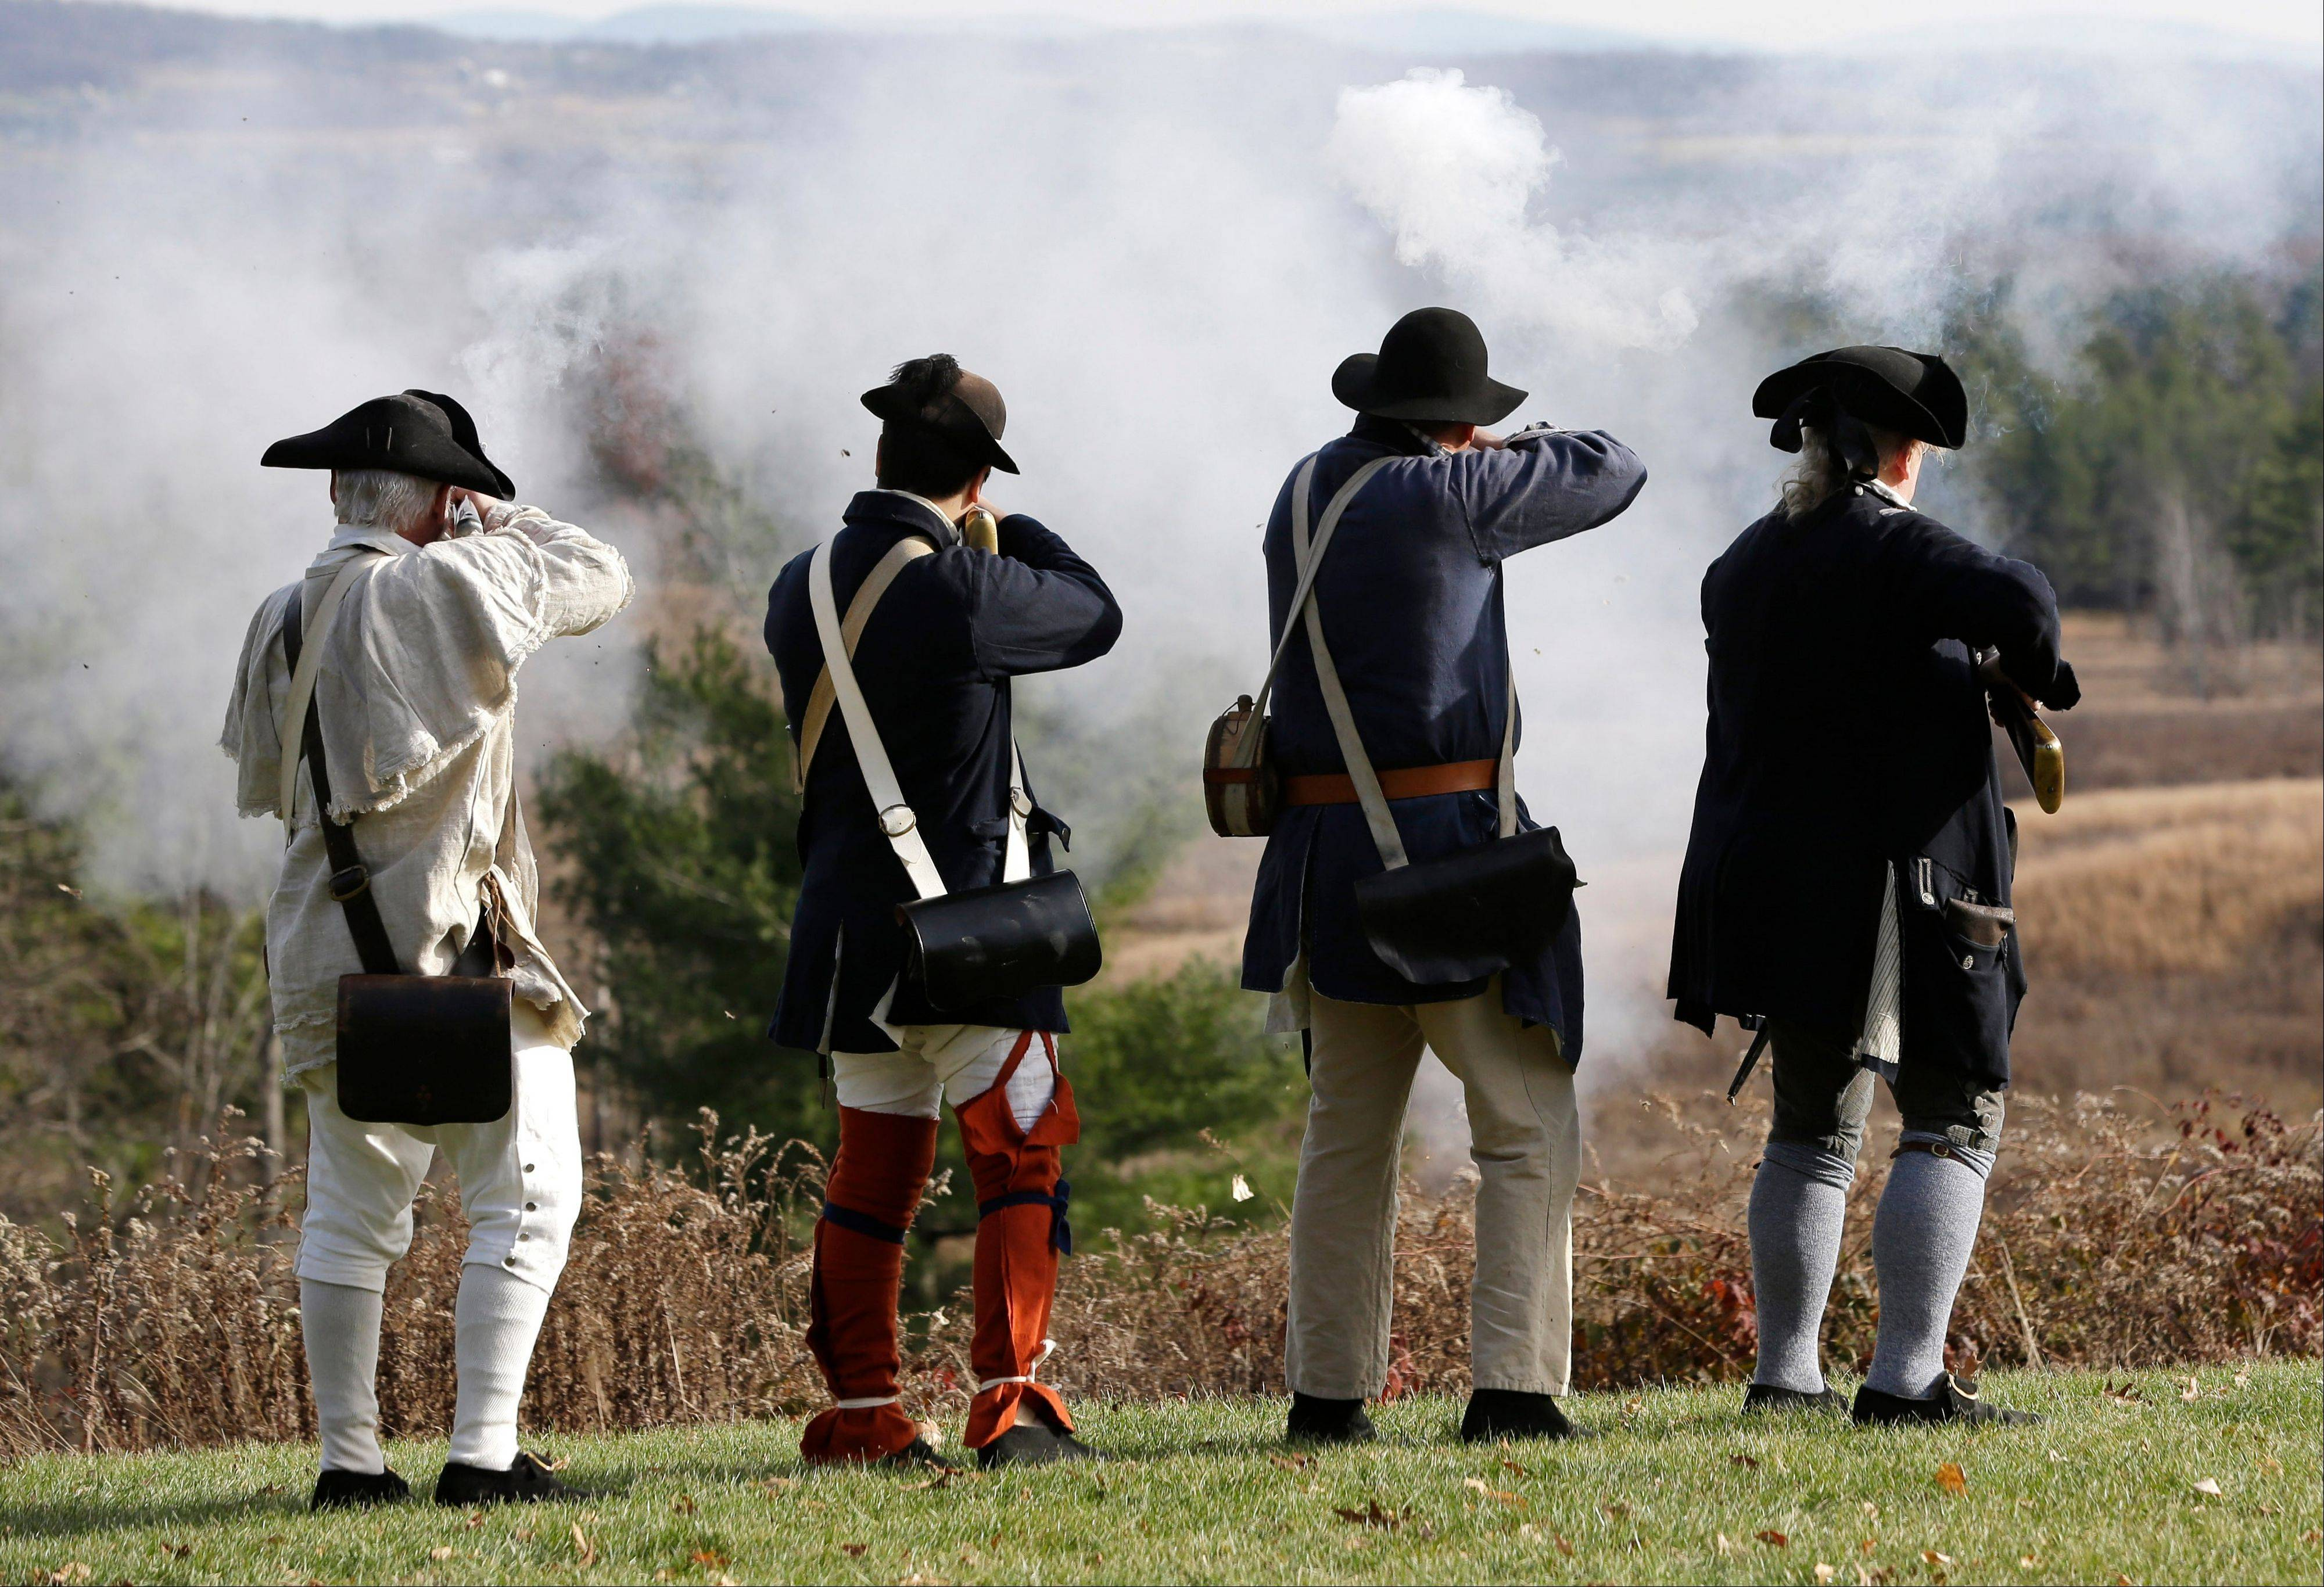 Revolutionary War re-enactors fire shots before a ceremony for the cannon. The cannon surrendered by the British after the Battles at Saratoga is back at the battlefield after stints in museums and private collections in four states over the past half-century.